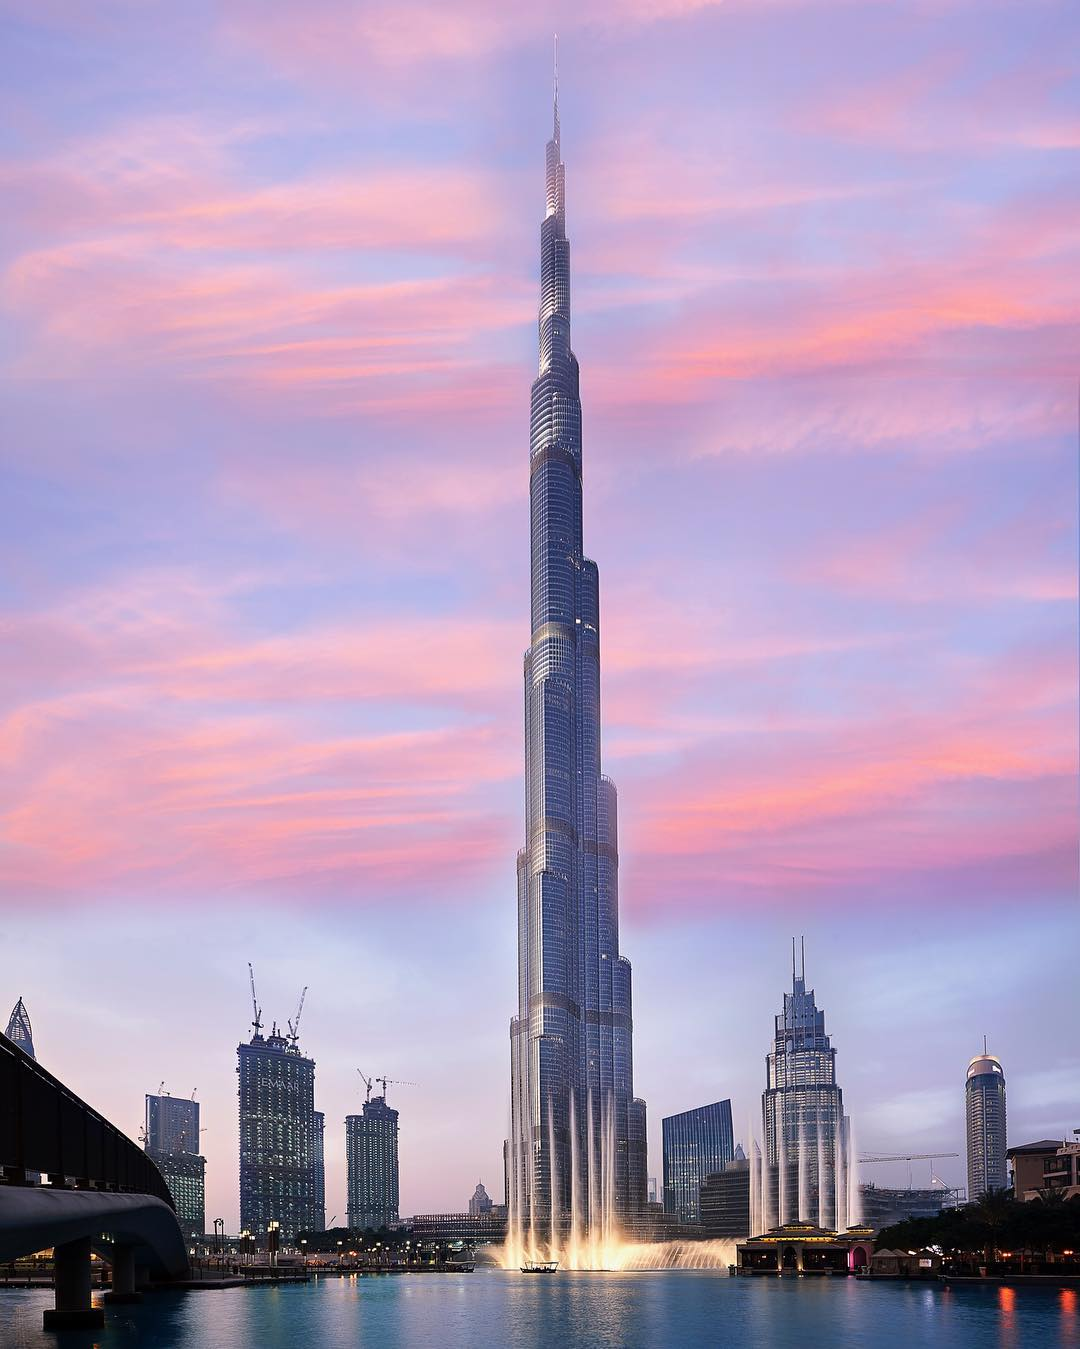 a view of the burj khalifa at dusk